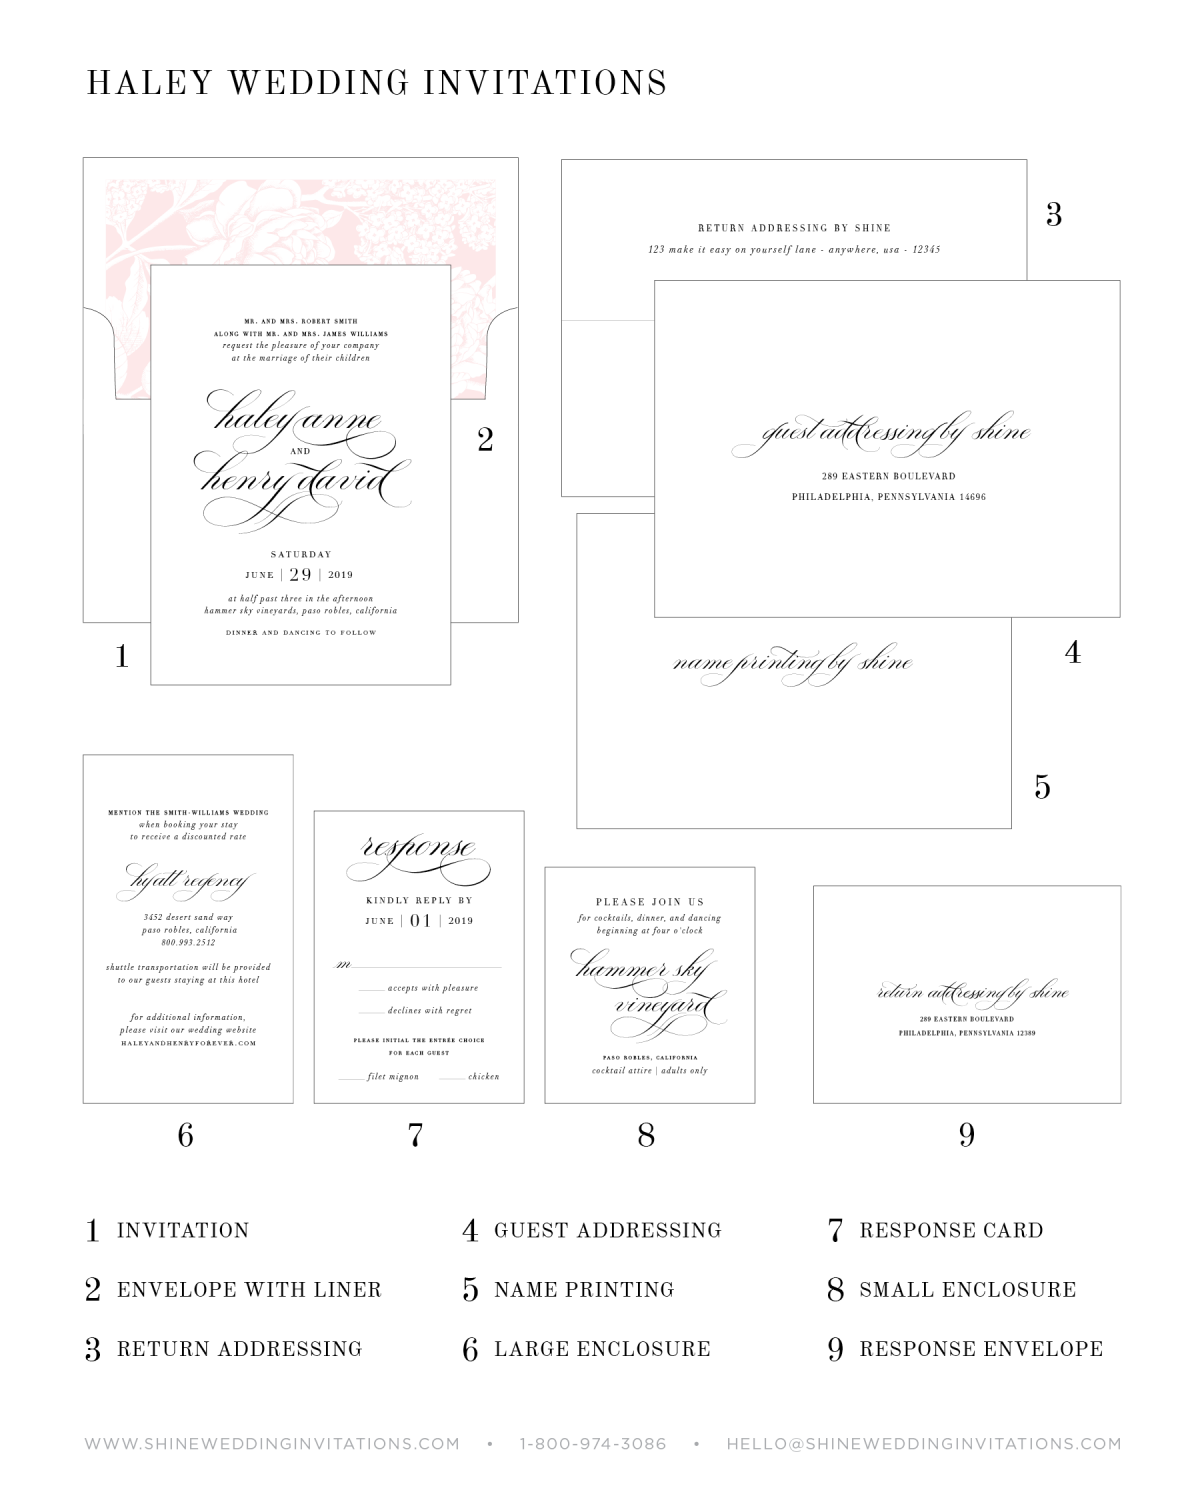 Wedding Invitation Components Guide